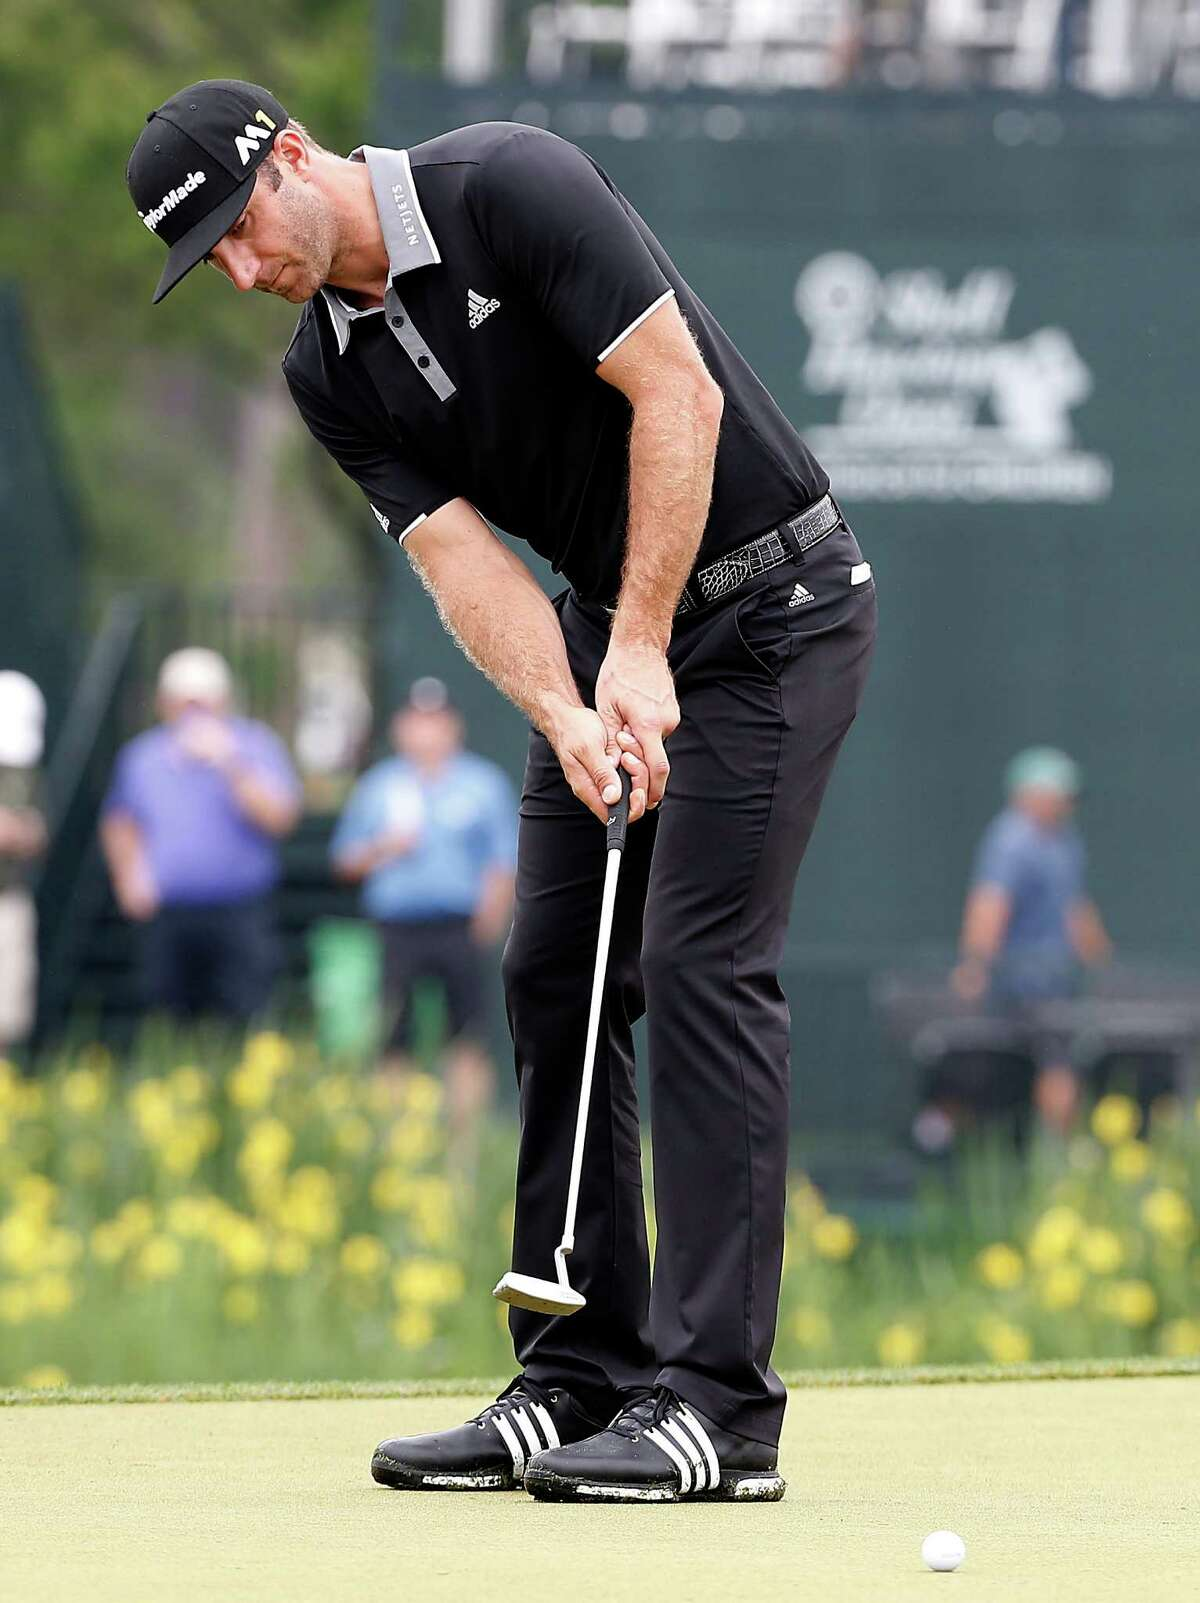 Dustin Johnson puts on the 18th green in the Shell Houston Open-Round 1 at the Golf Club of Houston on Wednesday, March 31, 2016 in Humble, TX.